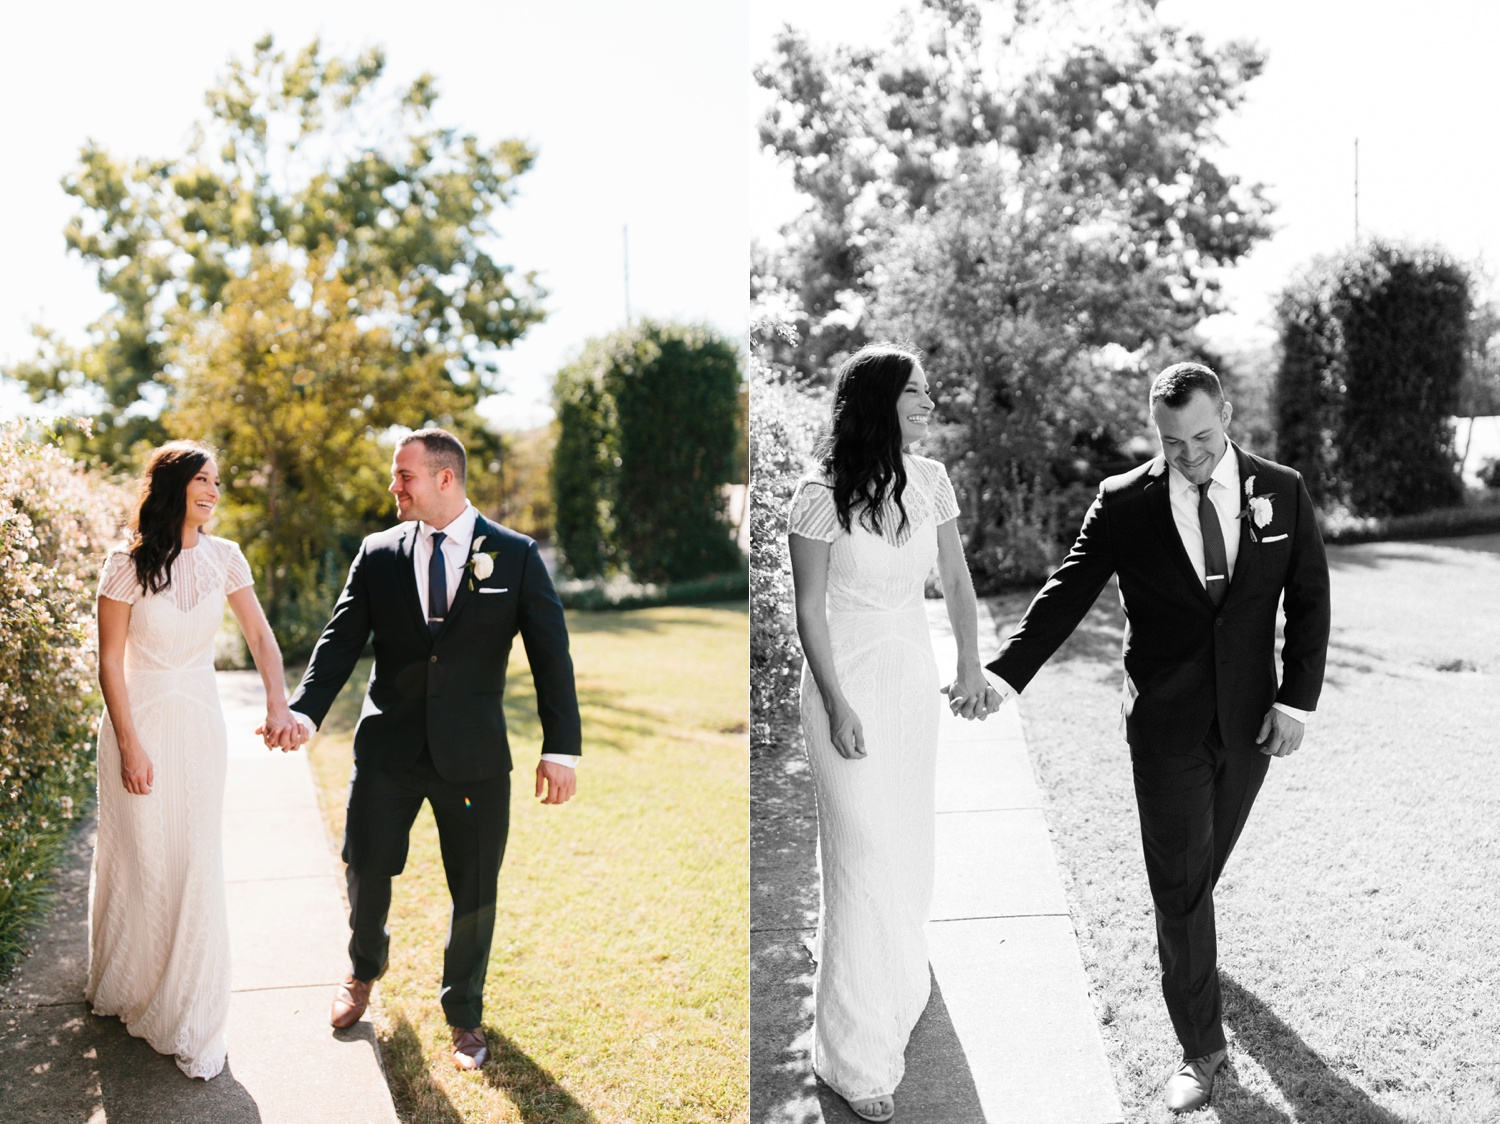 Kadee + Tyler | a raw, emotional wedding at the Filter Building on White Rock Lake in Dallas, TX by North Texas Wedding Photographer, Rachel Meagan Photography 082